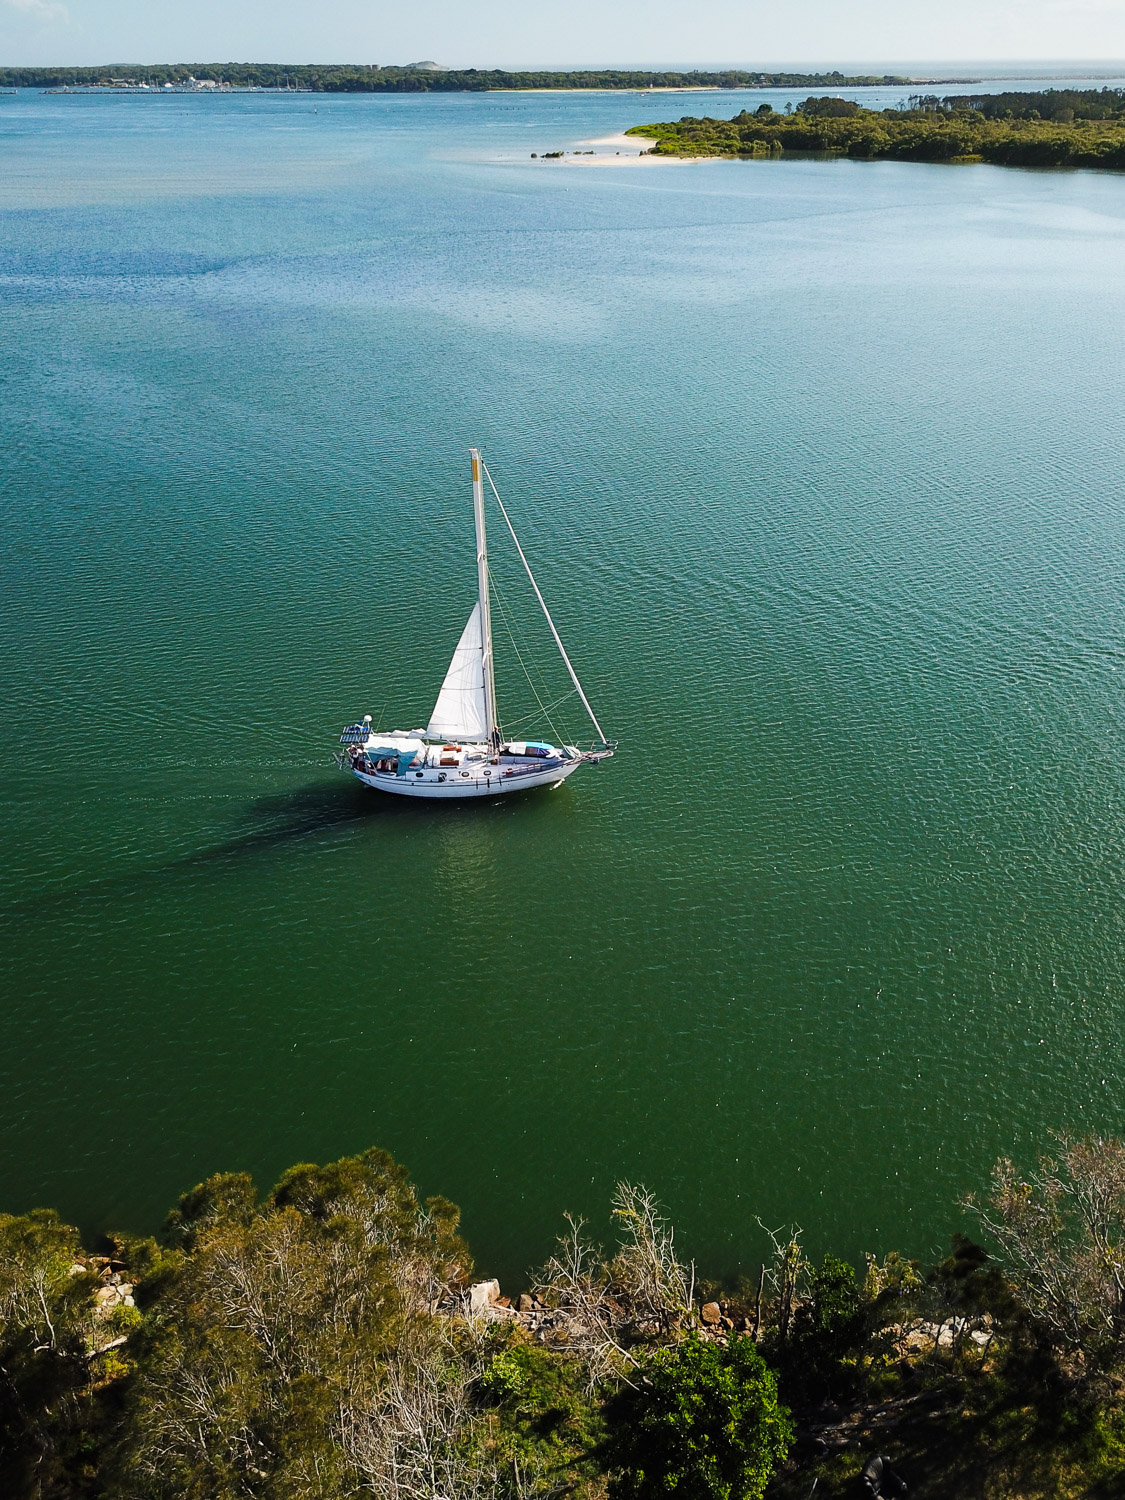 Image: By chance, I saw this boat sailing past when I was taking aerial images of fishing boats in Y...